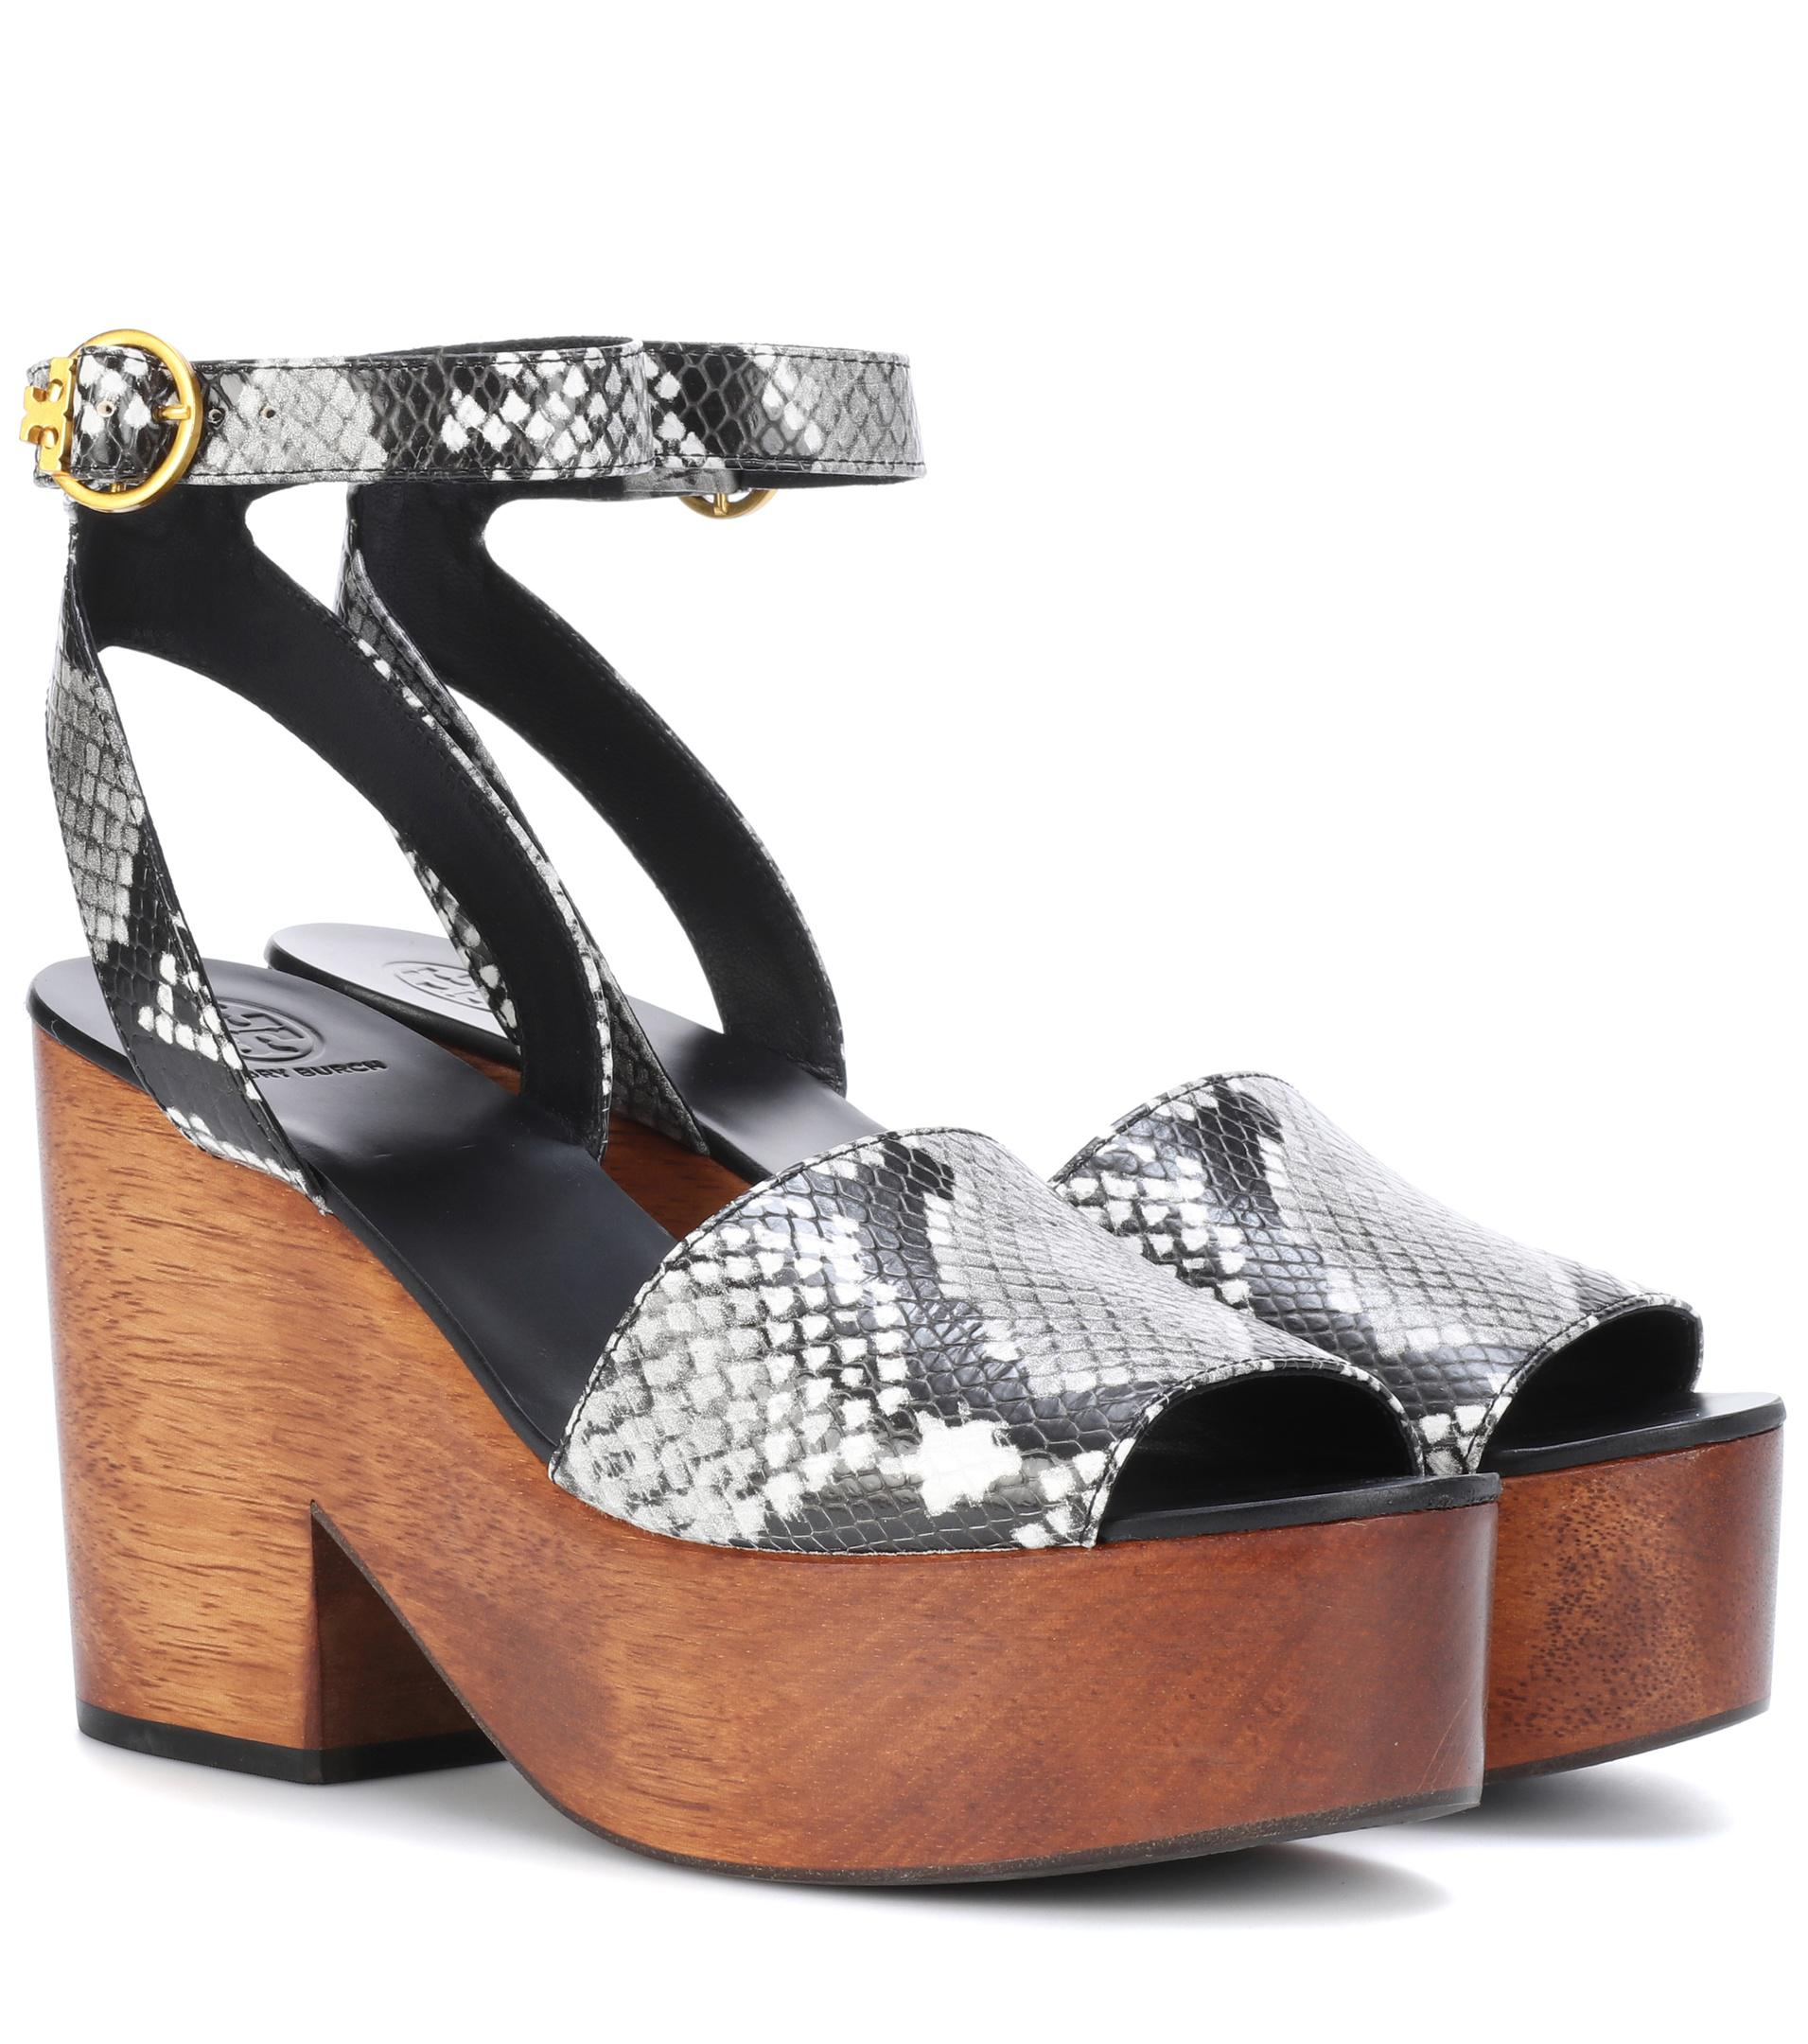 09769807423d09 Tory Burch Camilla Leather Sandals in Black - Lyst